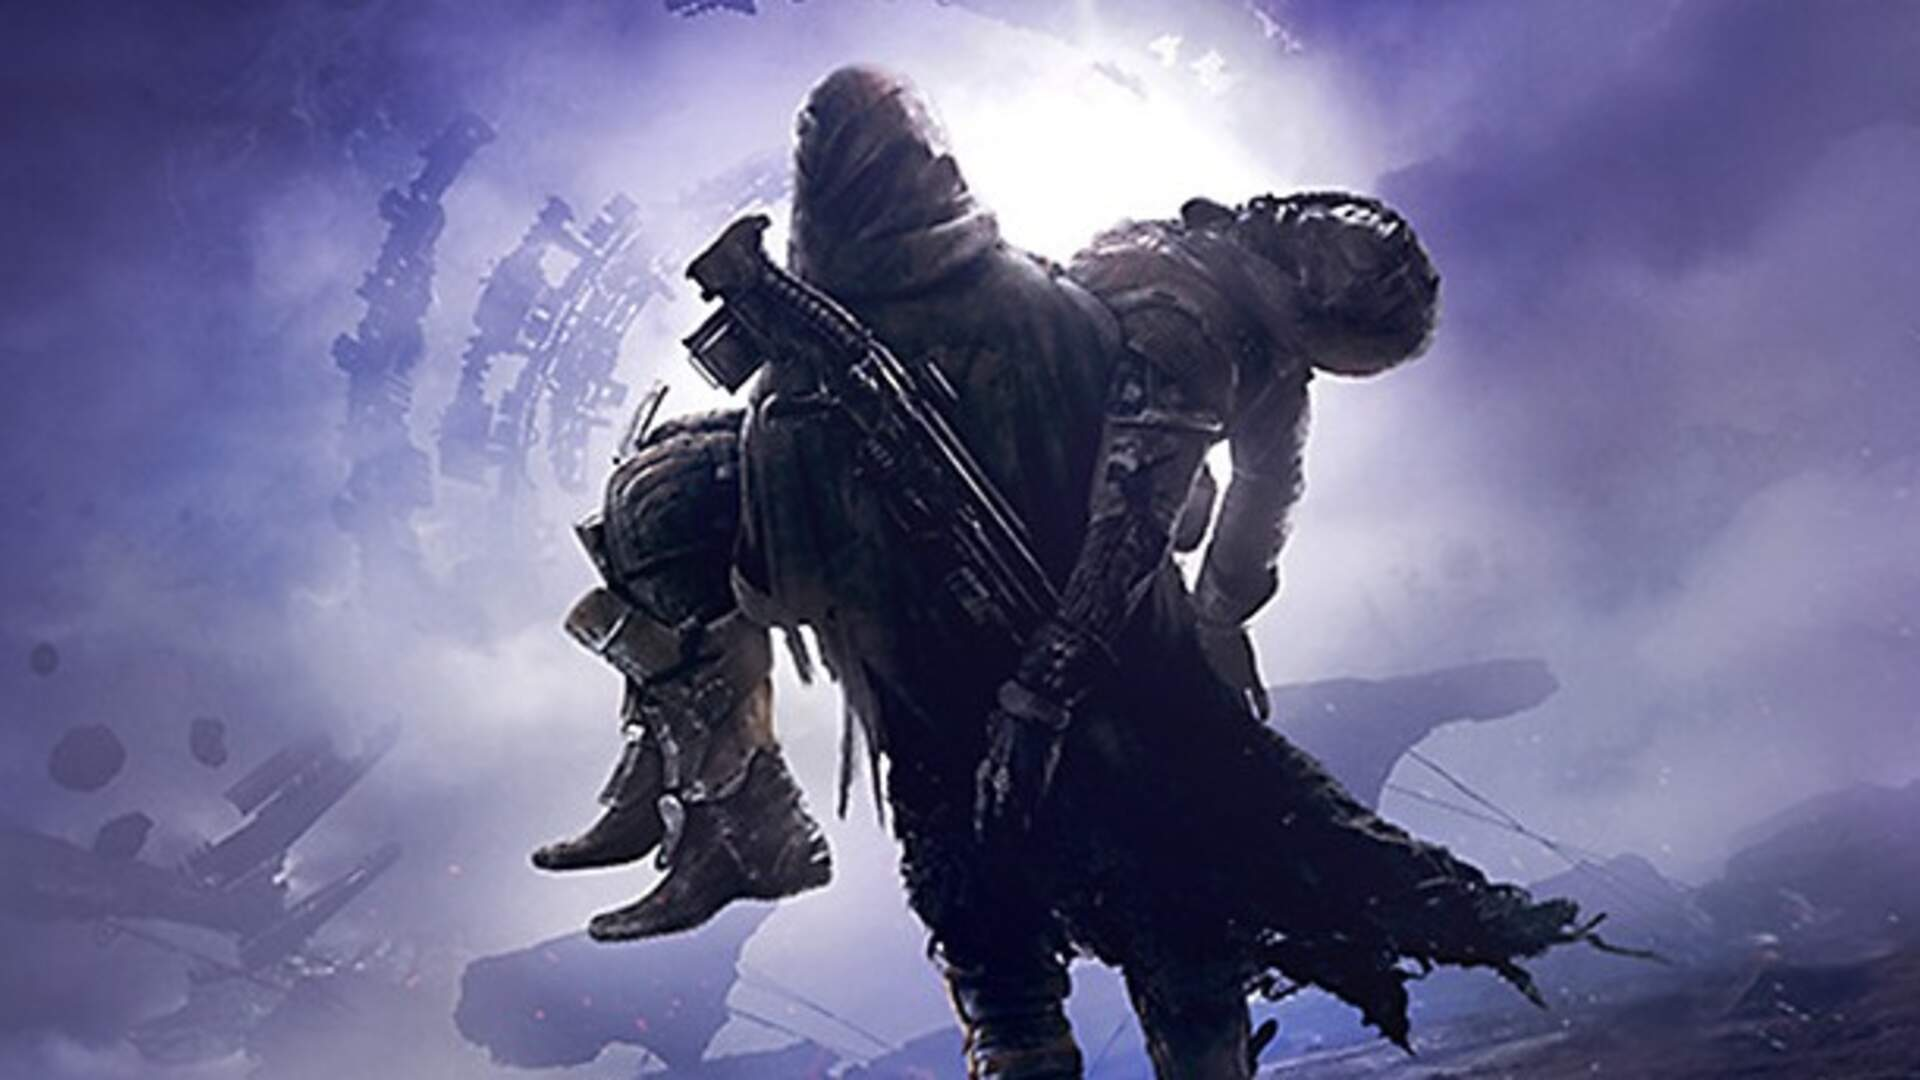 Destiny 2 Makes Surprise Appearance in September's Free PS Plus Games Lineup Ahead of Forsaken Release